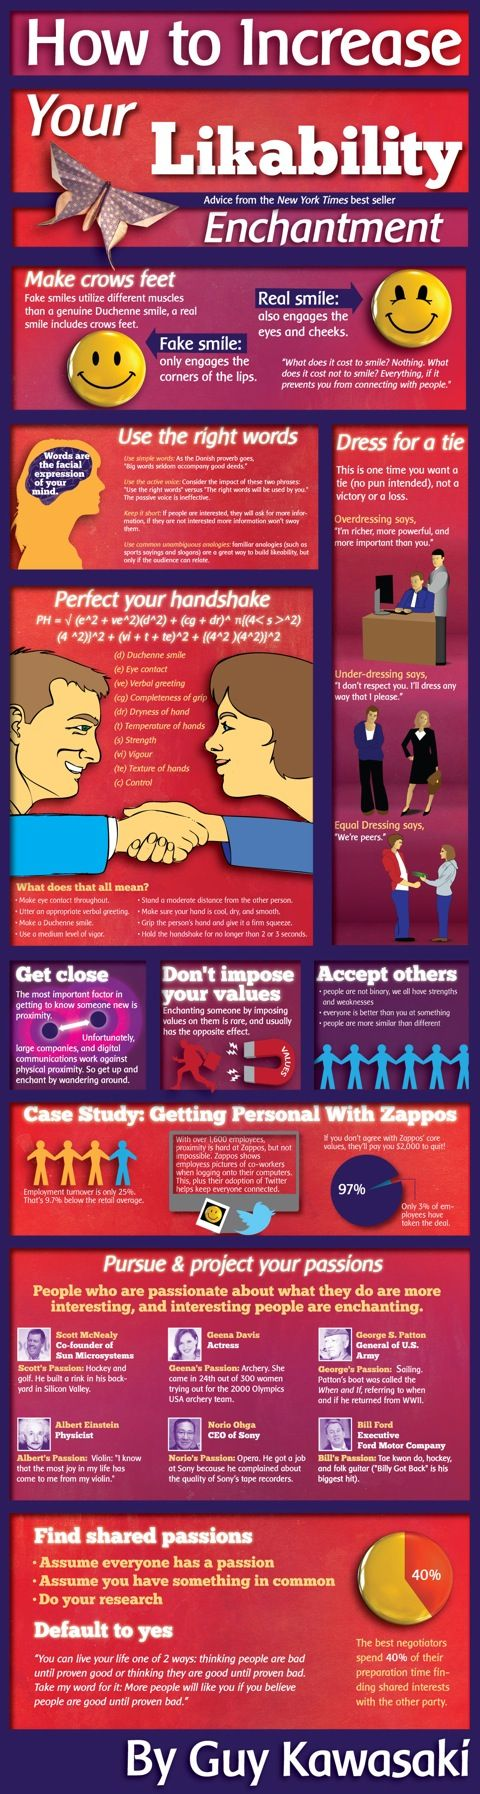 Now that I've spent some time with Guy Kawasaki, I can say he walks the walk.: Likability Infographic, Marketing, Social Media, Enchantment Infographic, Increase, Job Interview, Infographics, Business